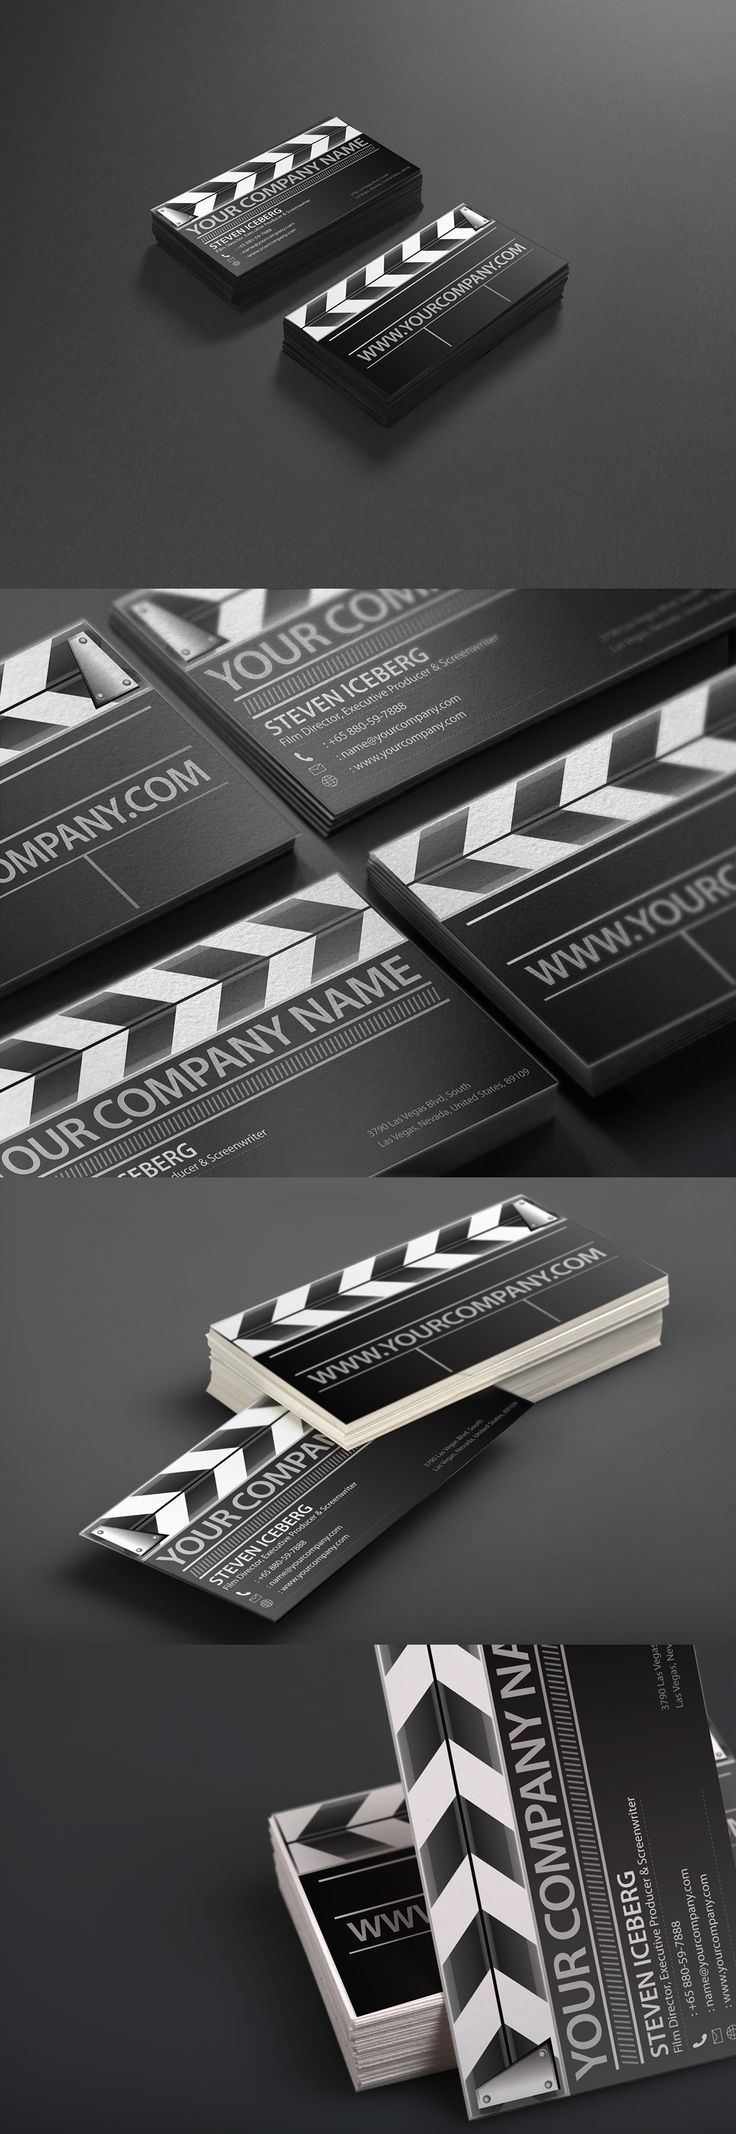 30 best business card images on pinterest lipsense business cards film director business card reheart Image collections